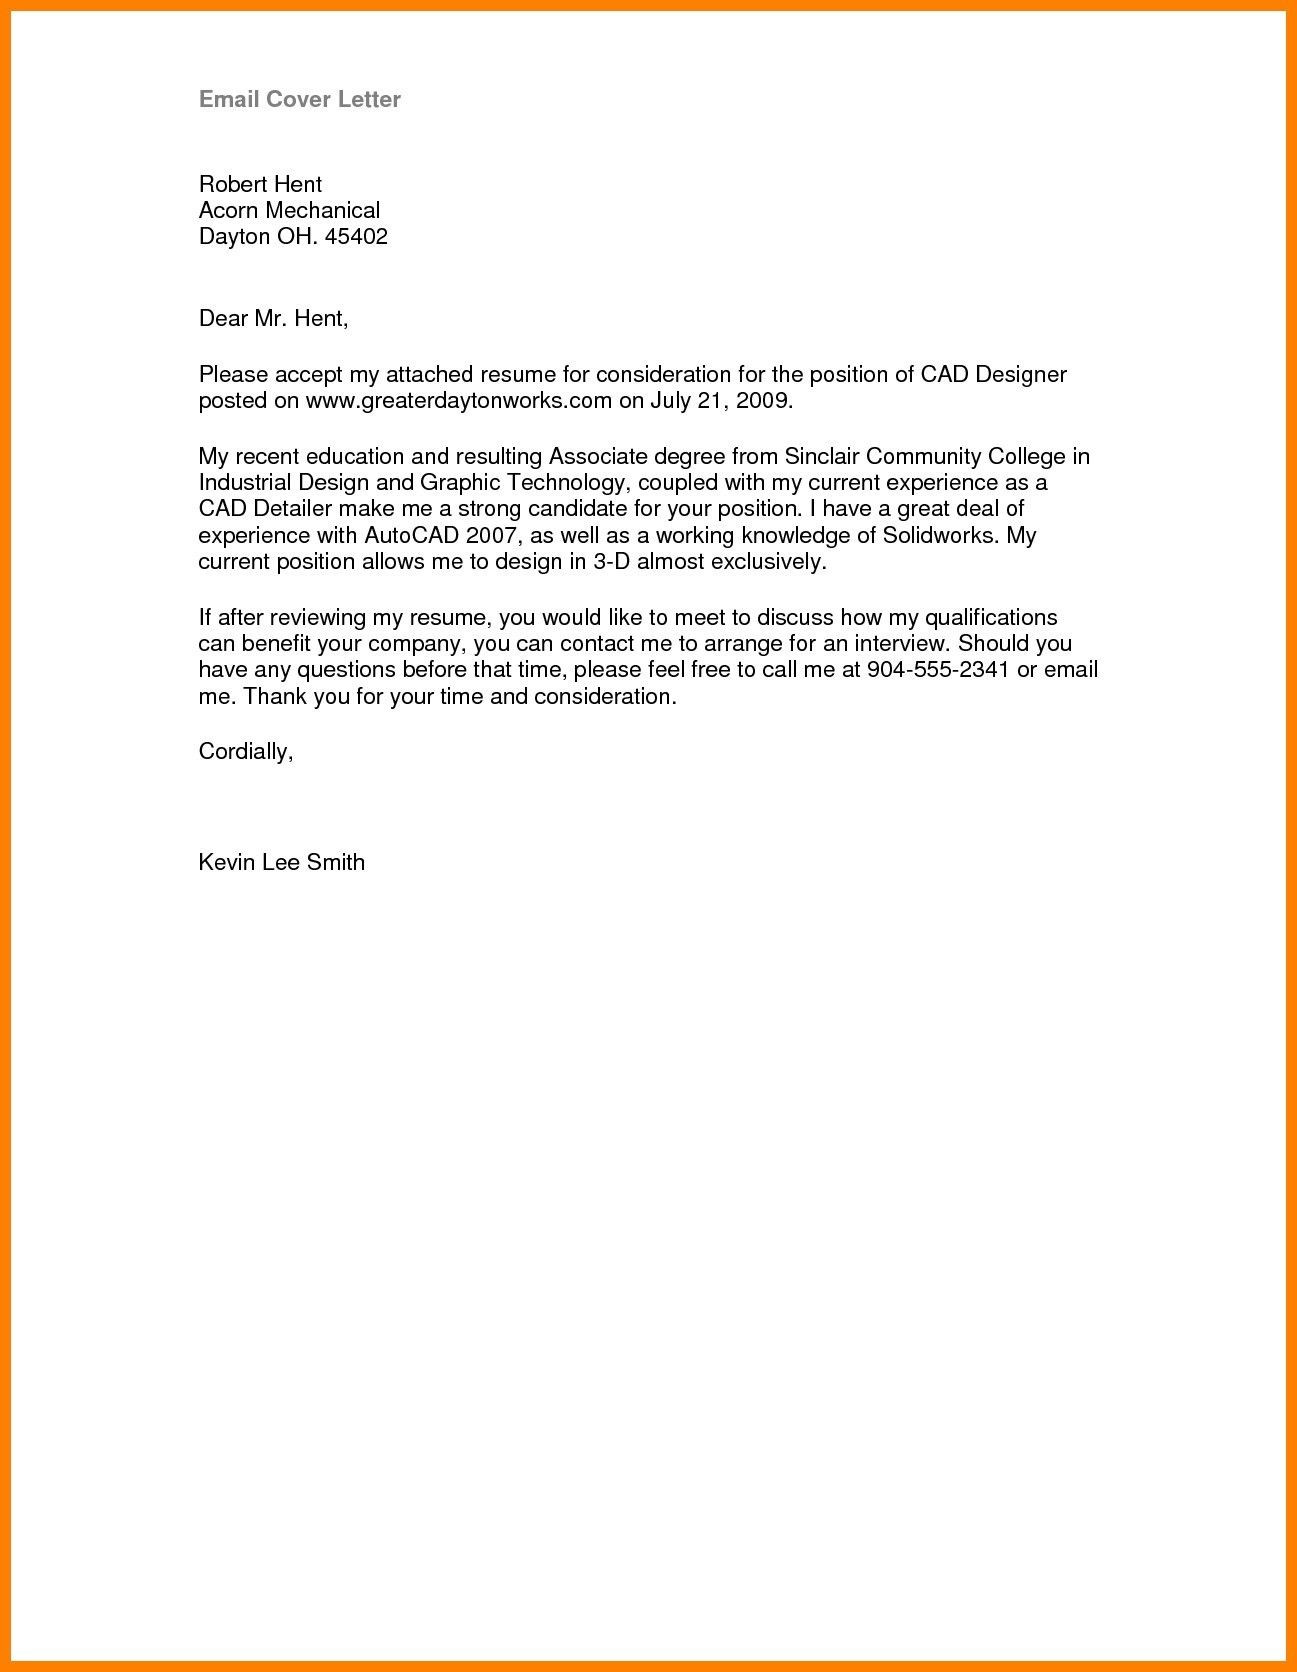 Email with Cover Letter and Resume attached Sample 25lancarrezekiq Email Cover Letter Sample . Email Cover Letter Sample Cover ...